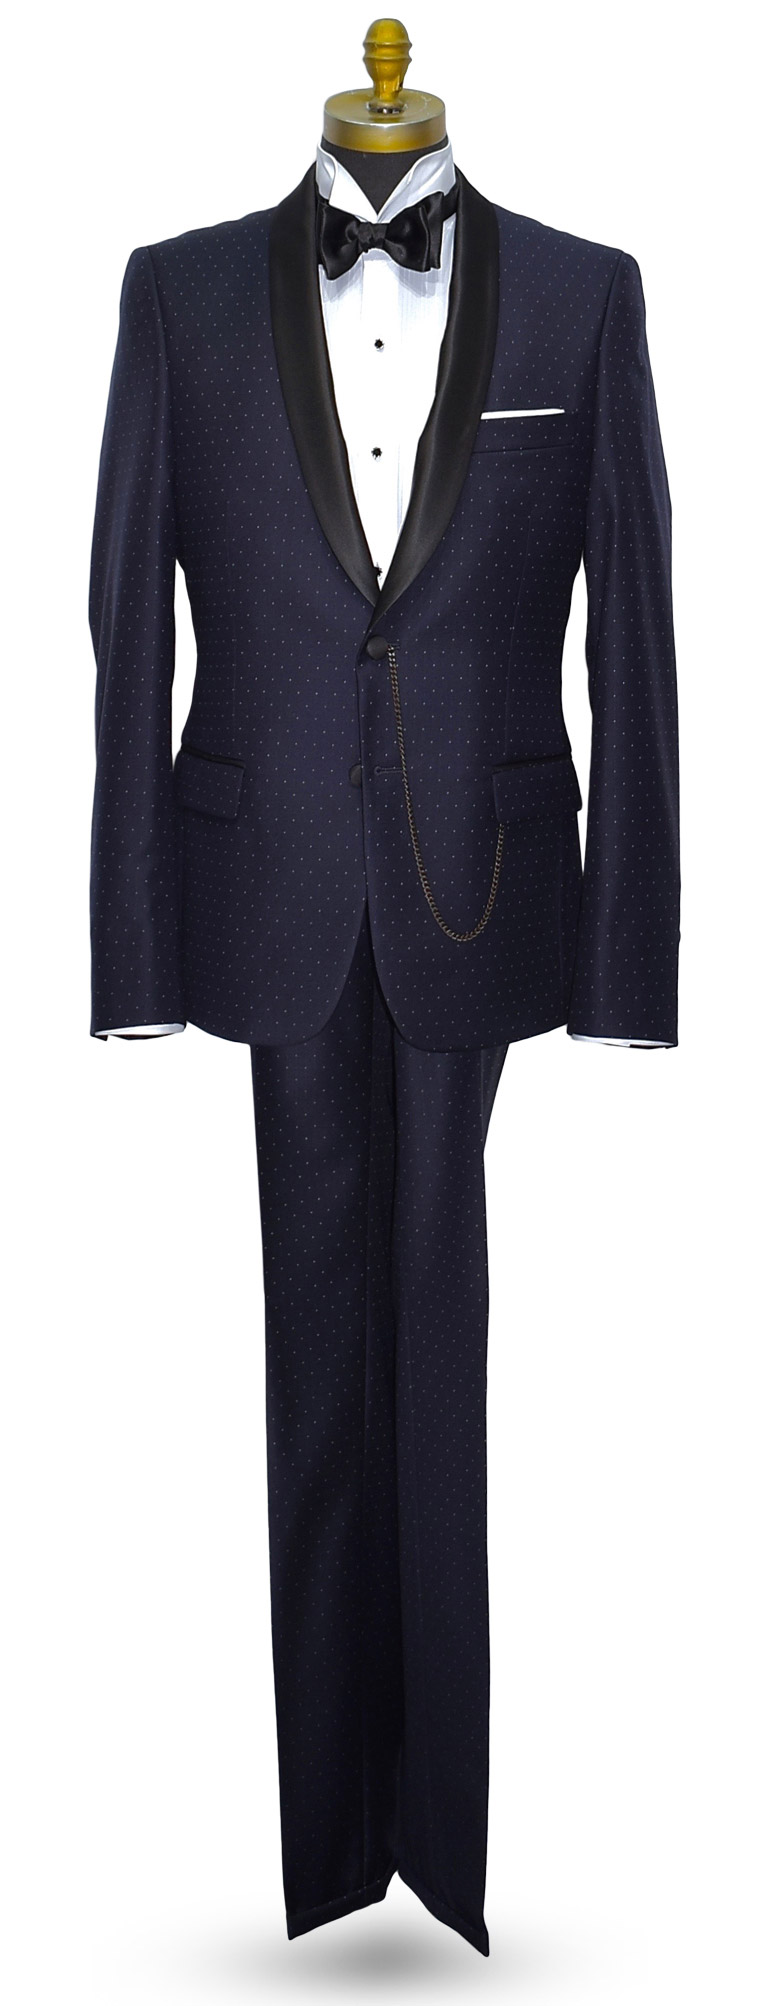 Blue Tuxedo Shawl Collar Cosmos Ultra Slim Fit Coat and Pants Set